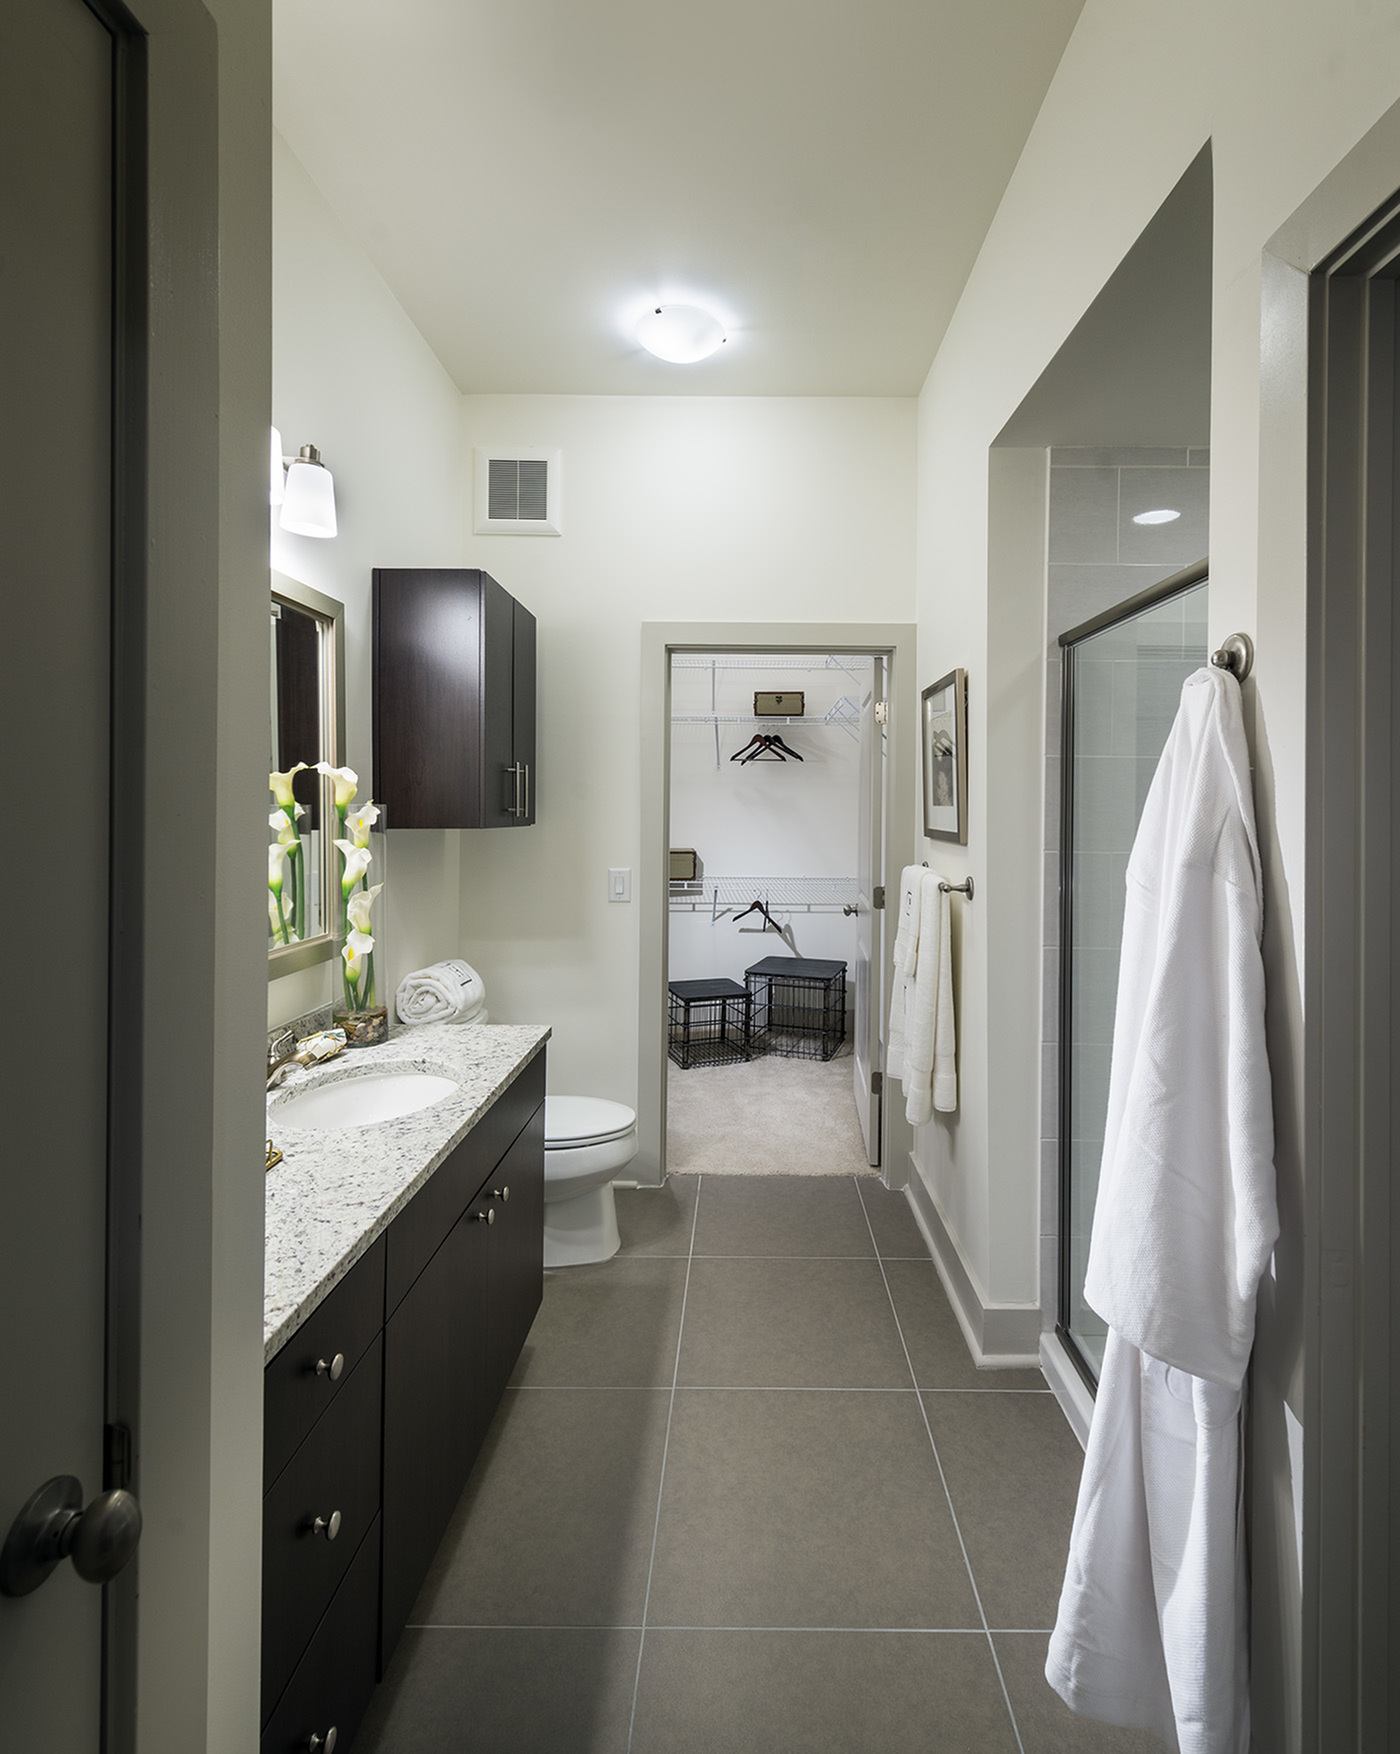 Image of Spa-inspired bathrooms with large soaking tubs* for Hanover Perimeter